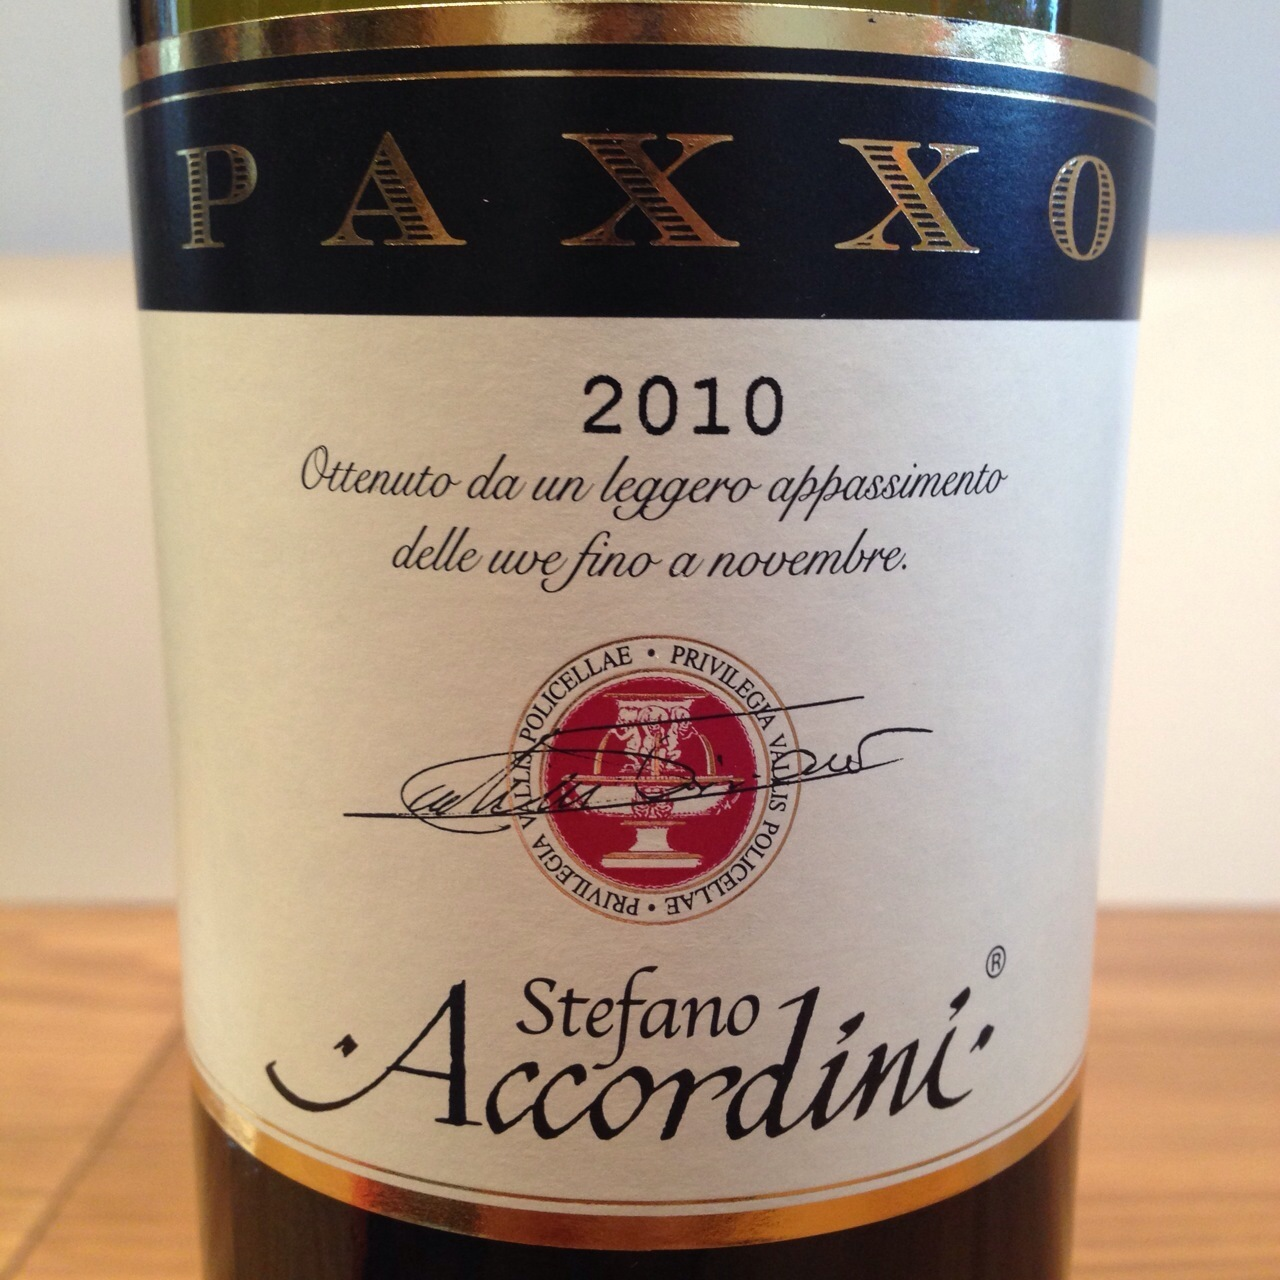 Accordini Paxxo 2010.JPG